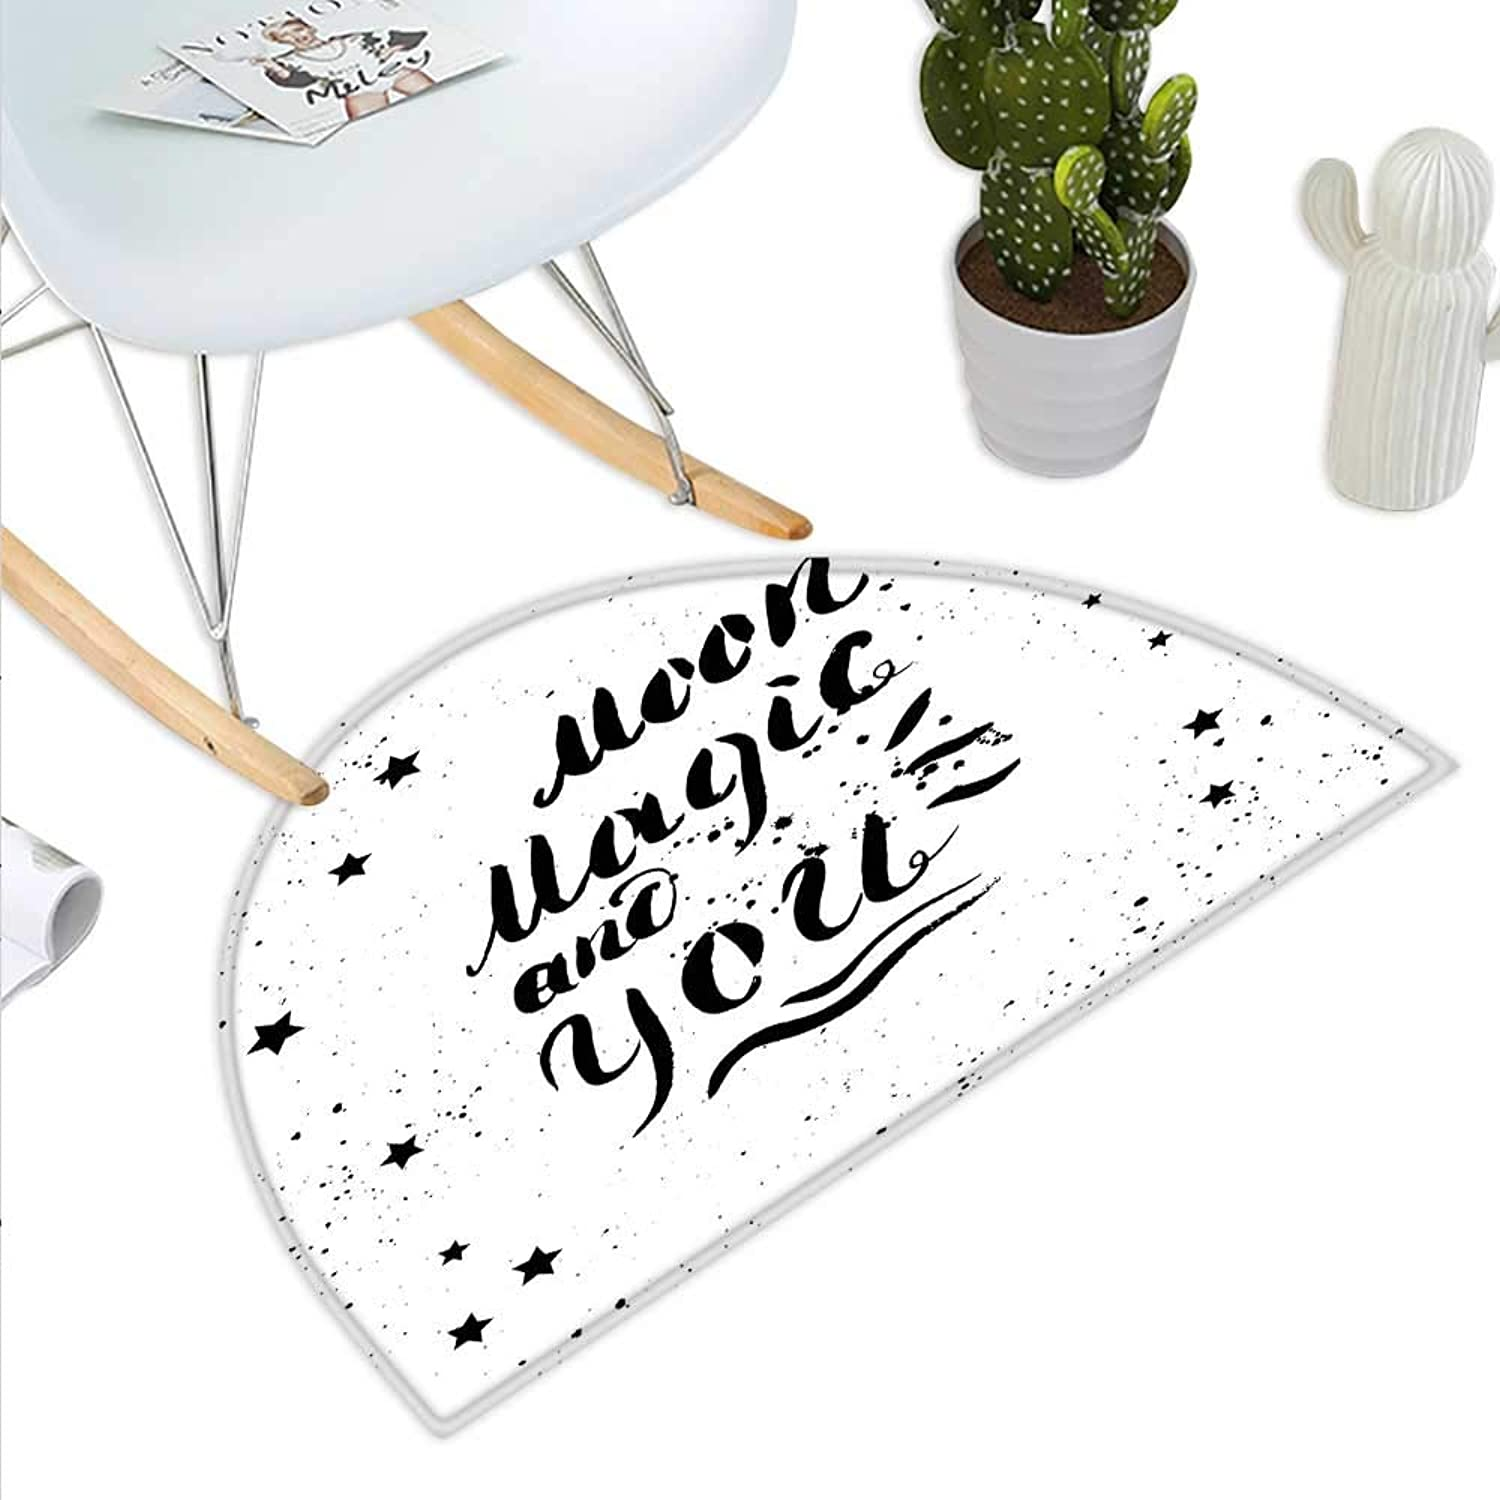 Romantic Semicircle Doormat Moon Magic and You Inspirational Messy Modern Brush Pen Calligraphy with Stars Halfmoon doormats H 43.3  xD 64.9  Black White